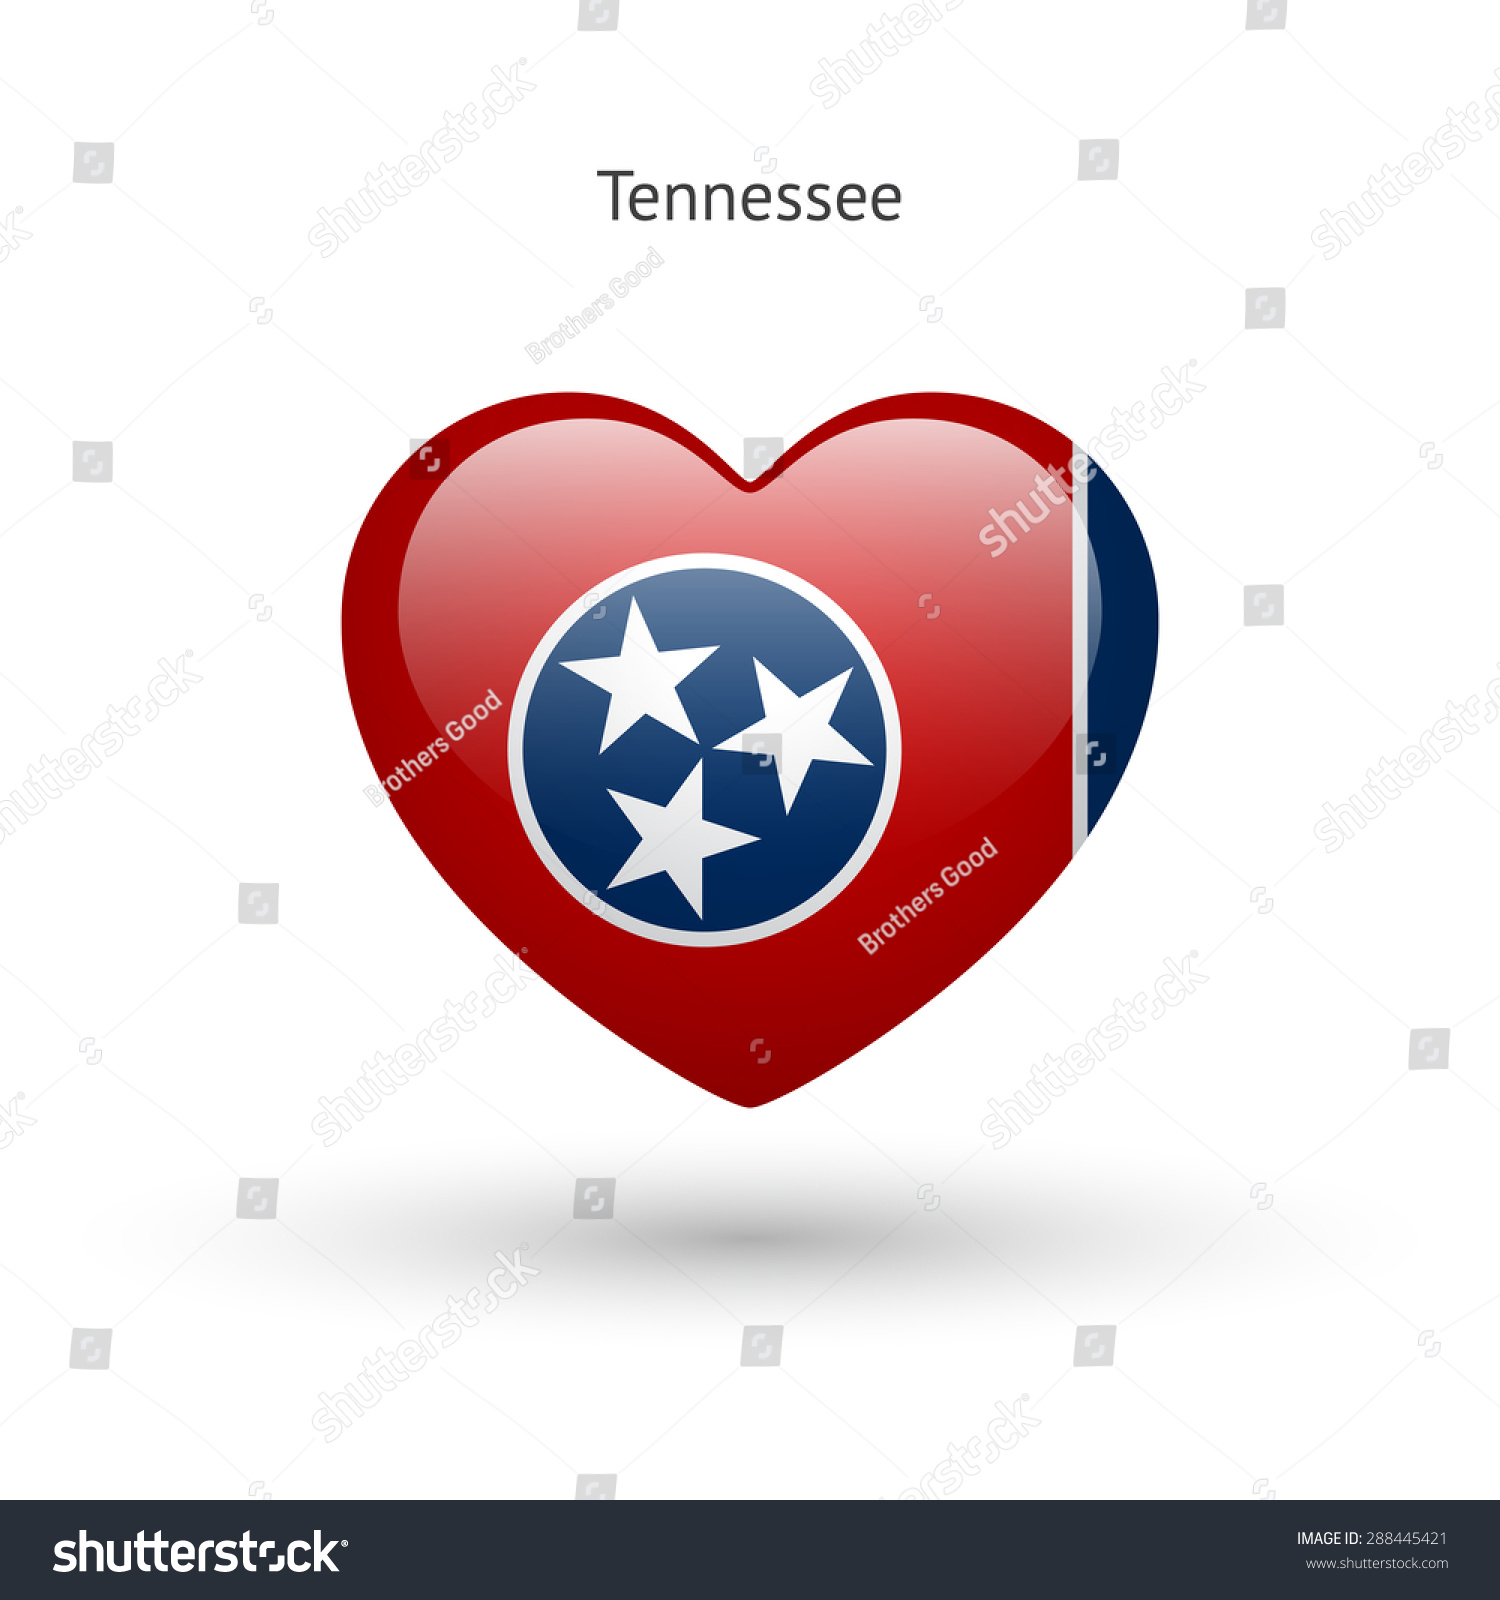 Love Tennessee State Symbol Heart Flag Stock Vector